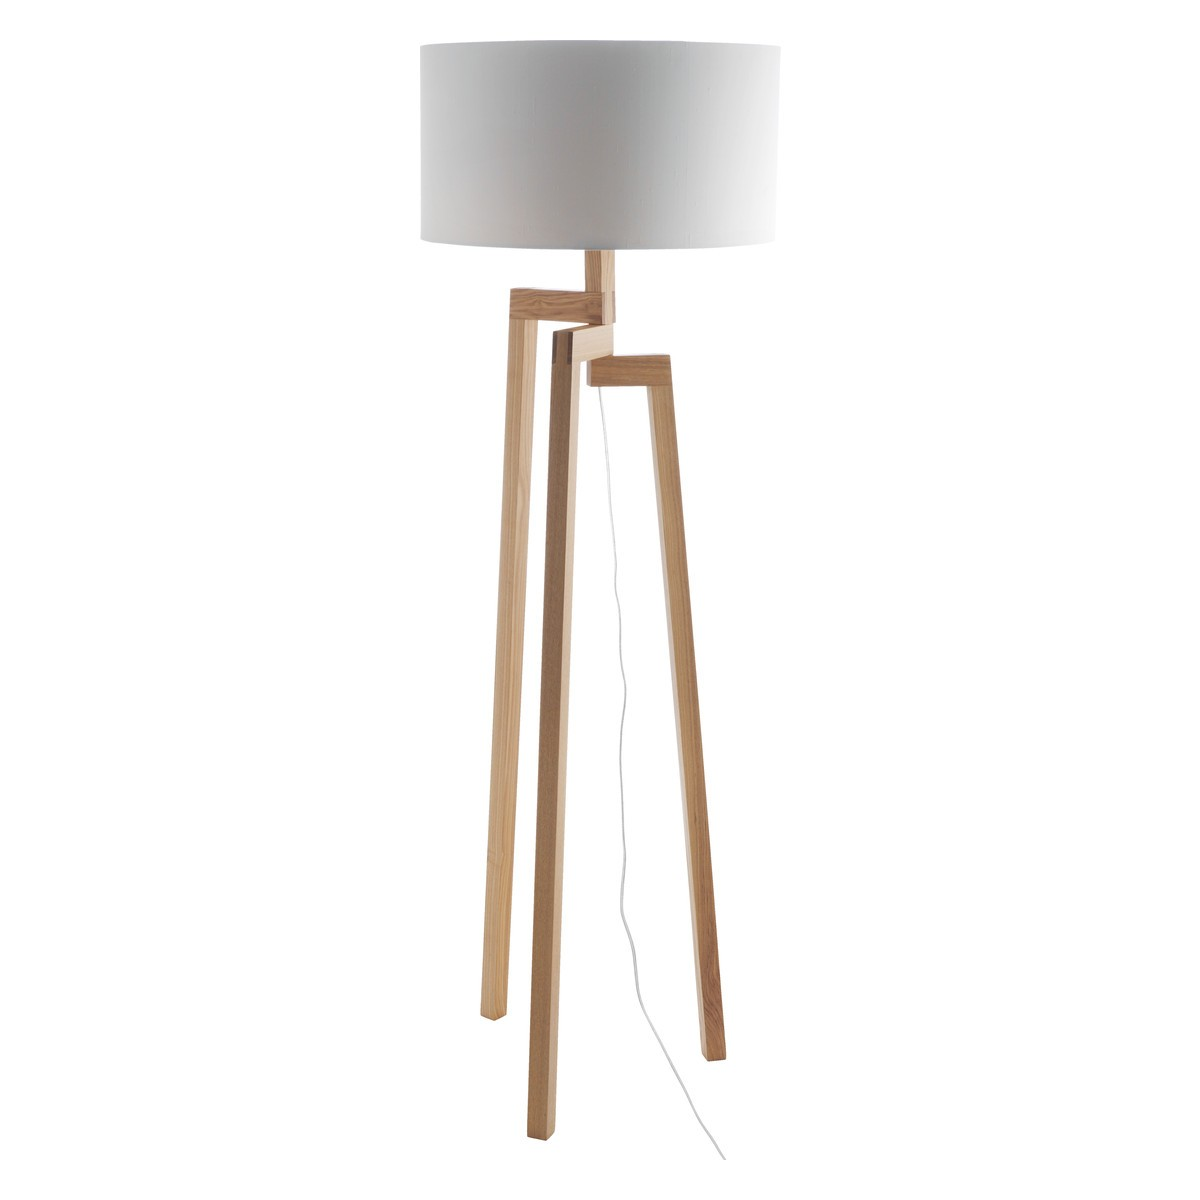 White wooden floor lamp feeling of symmetry and Wood floor lamp